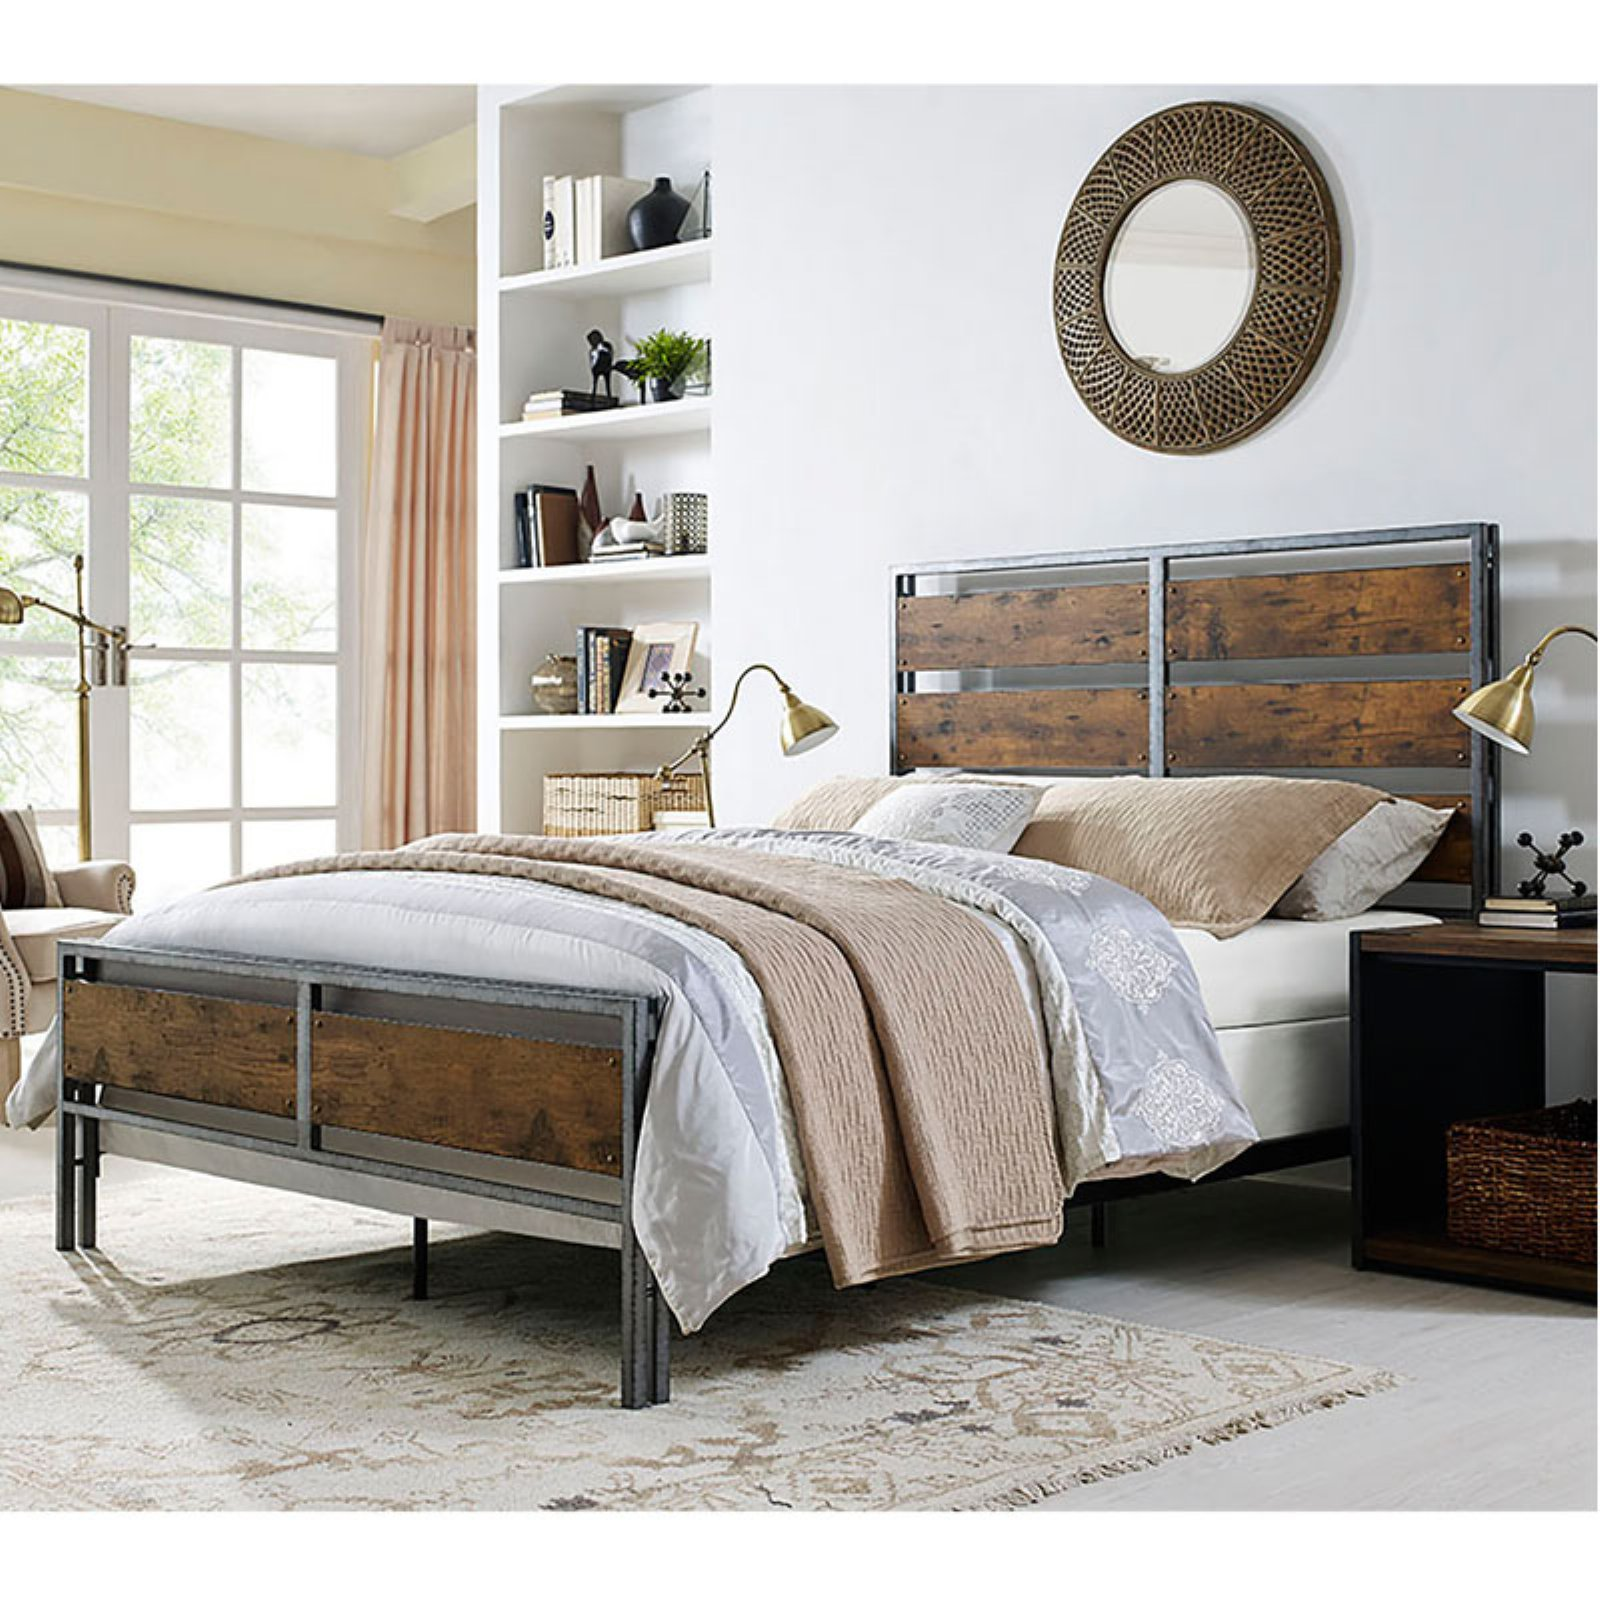 Walker Edison Queen Size Metal and Wood Plank Bed - Brown